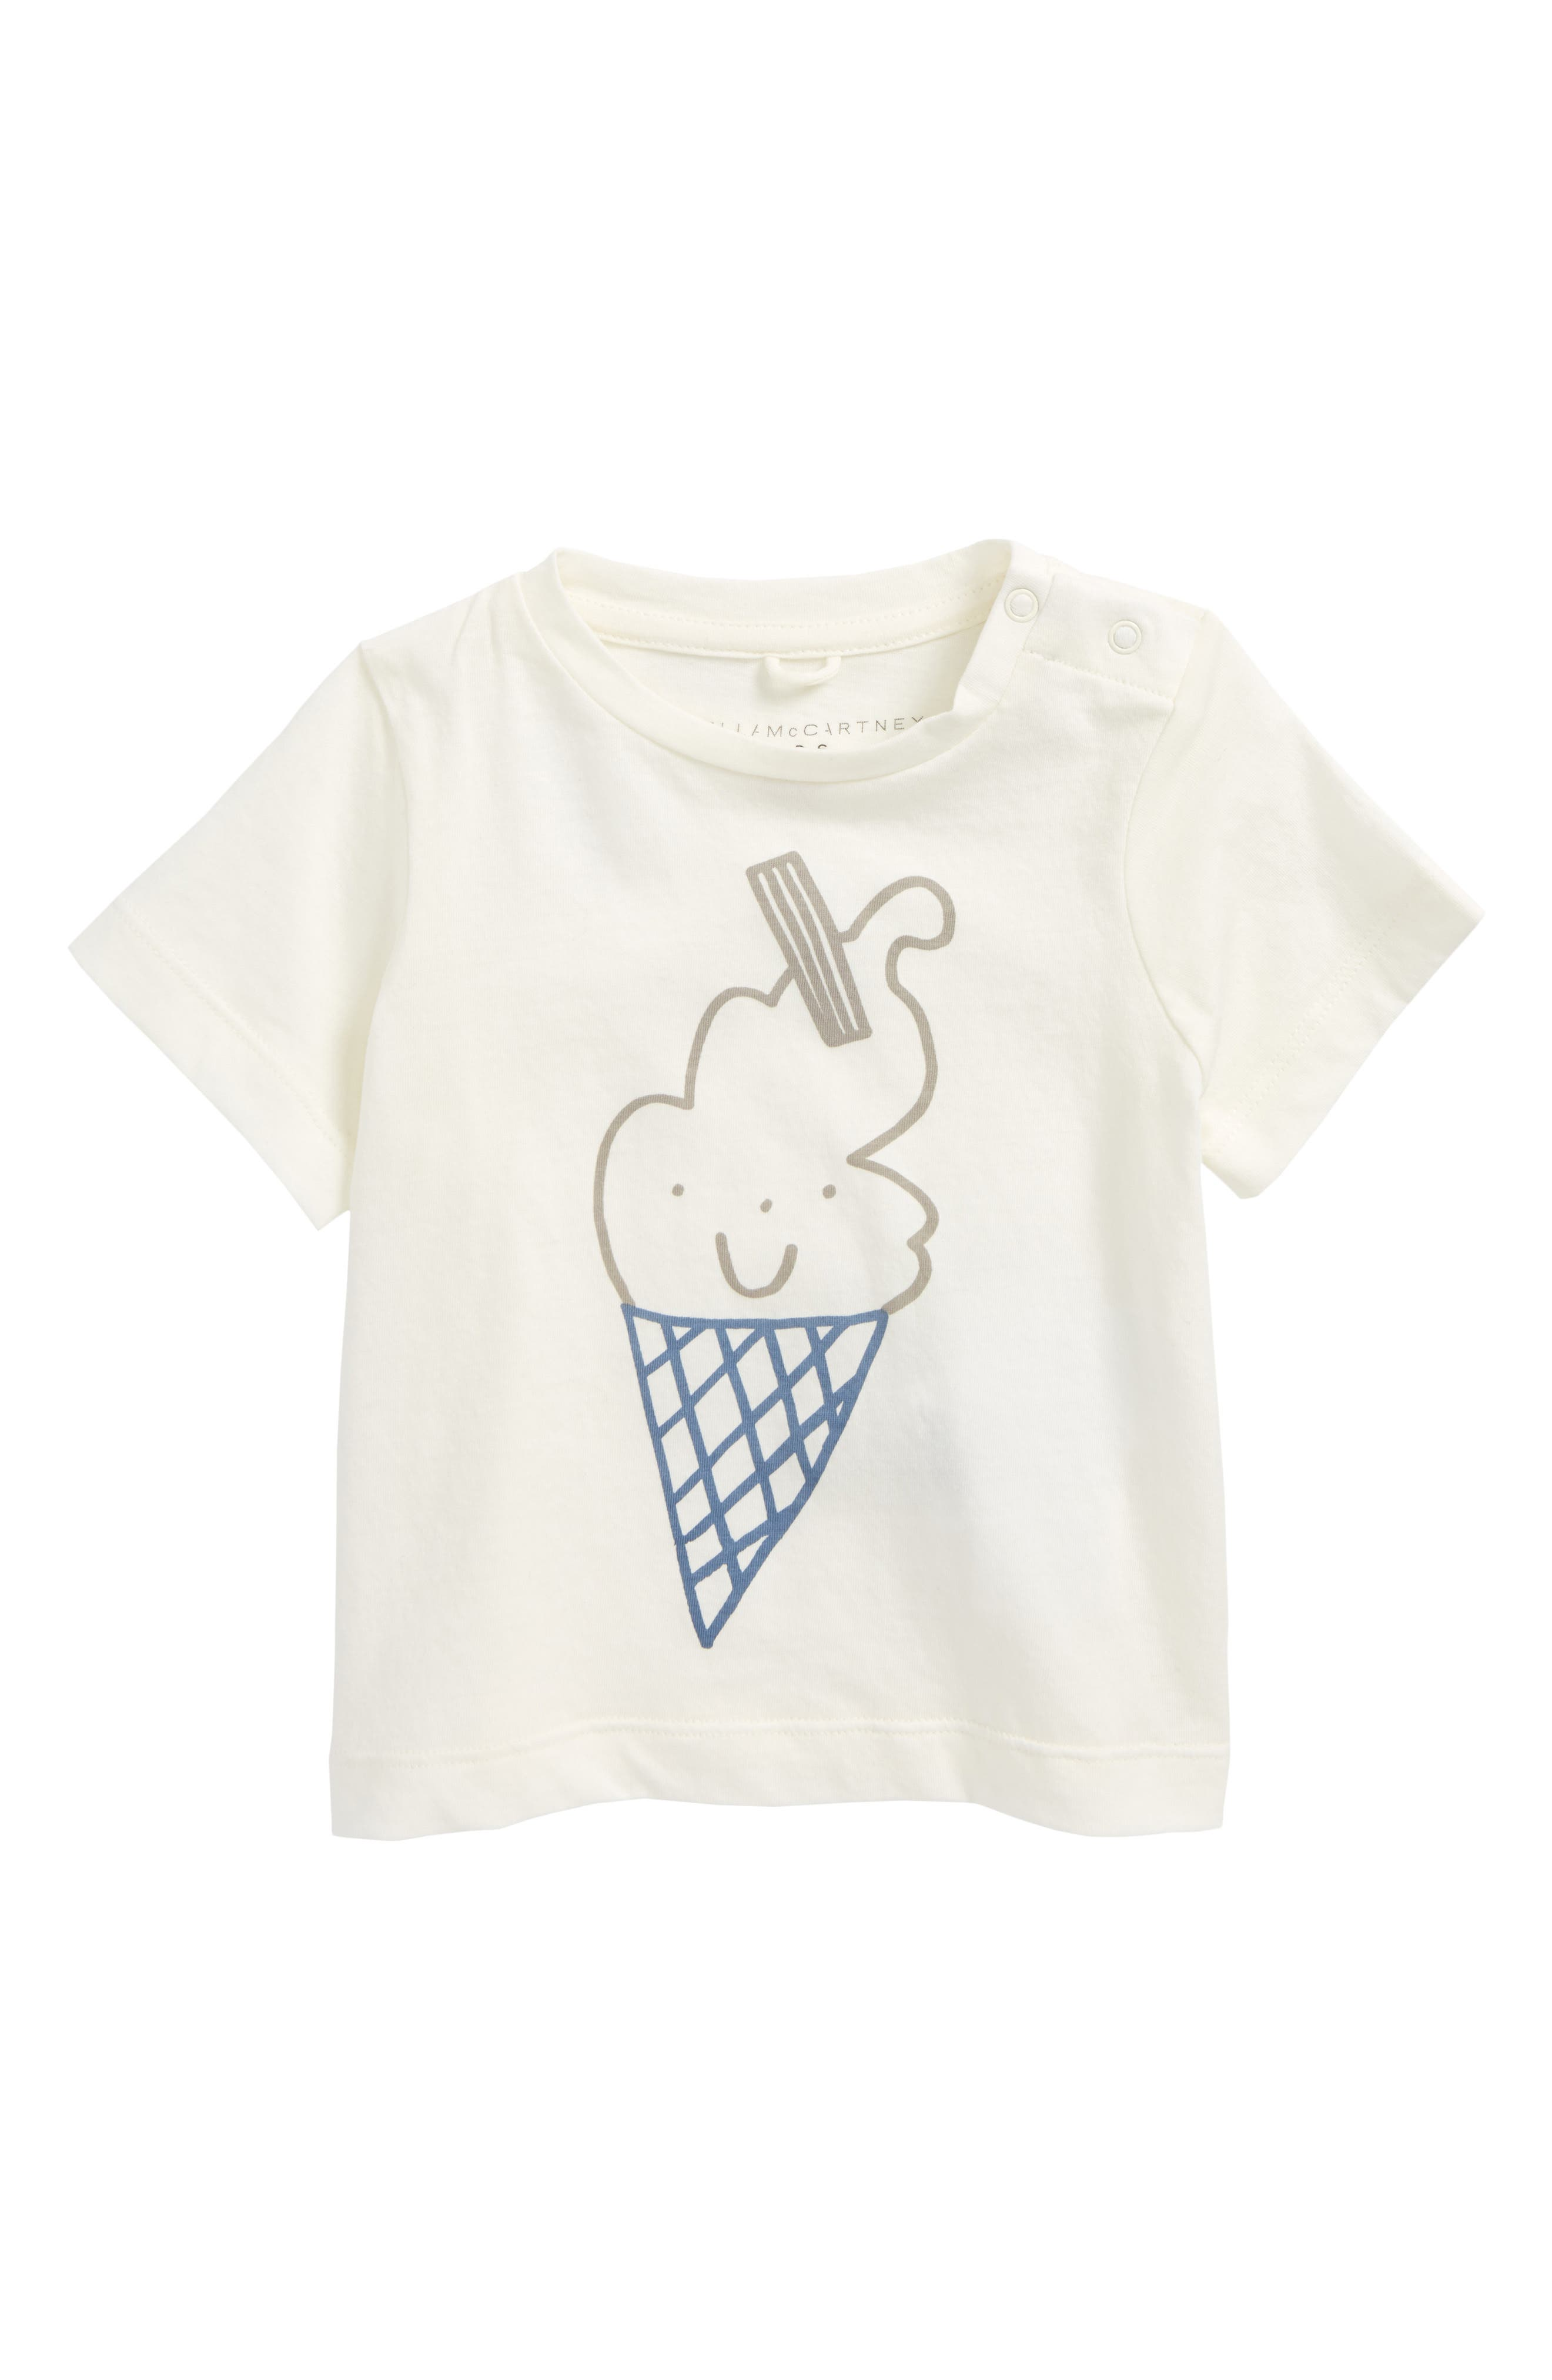 Stella McCartney Chuckle Smiley Ice Cream Cone T-Shirt (Baby)